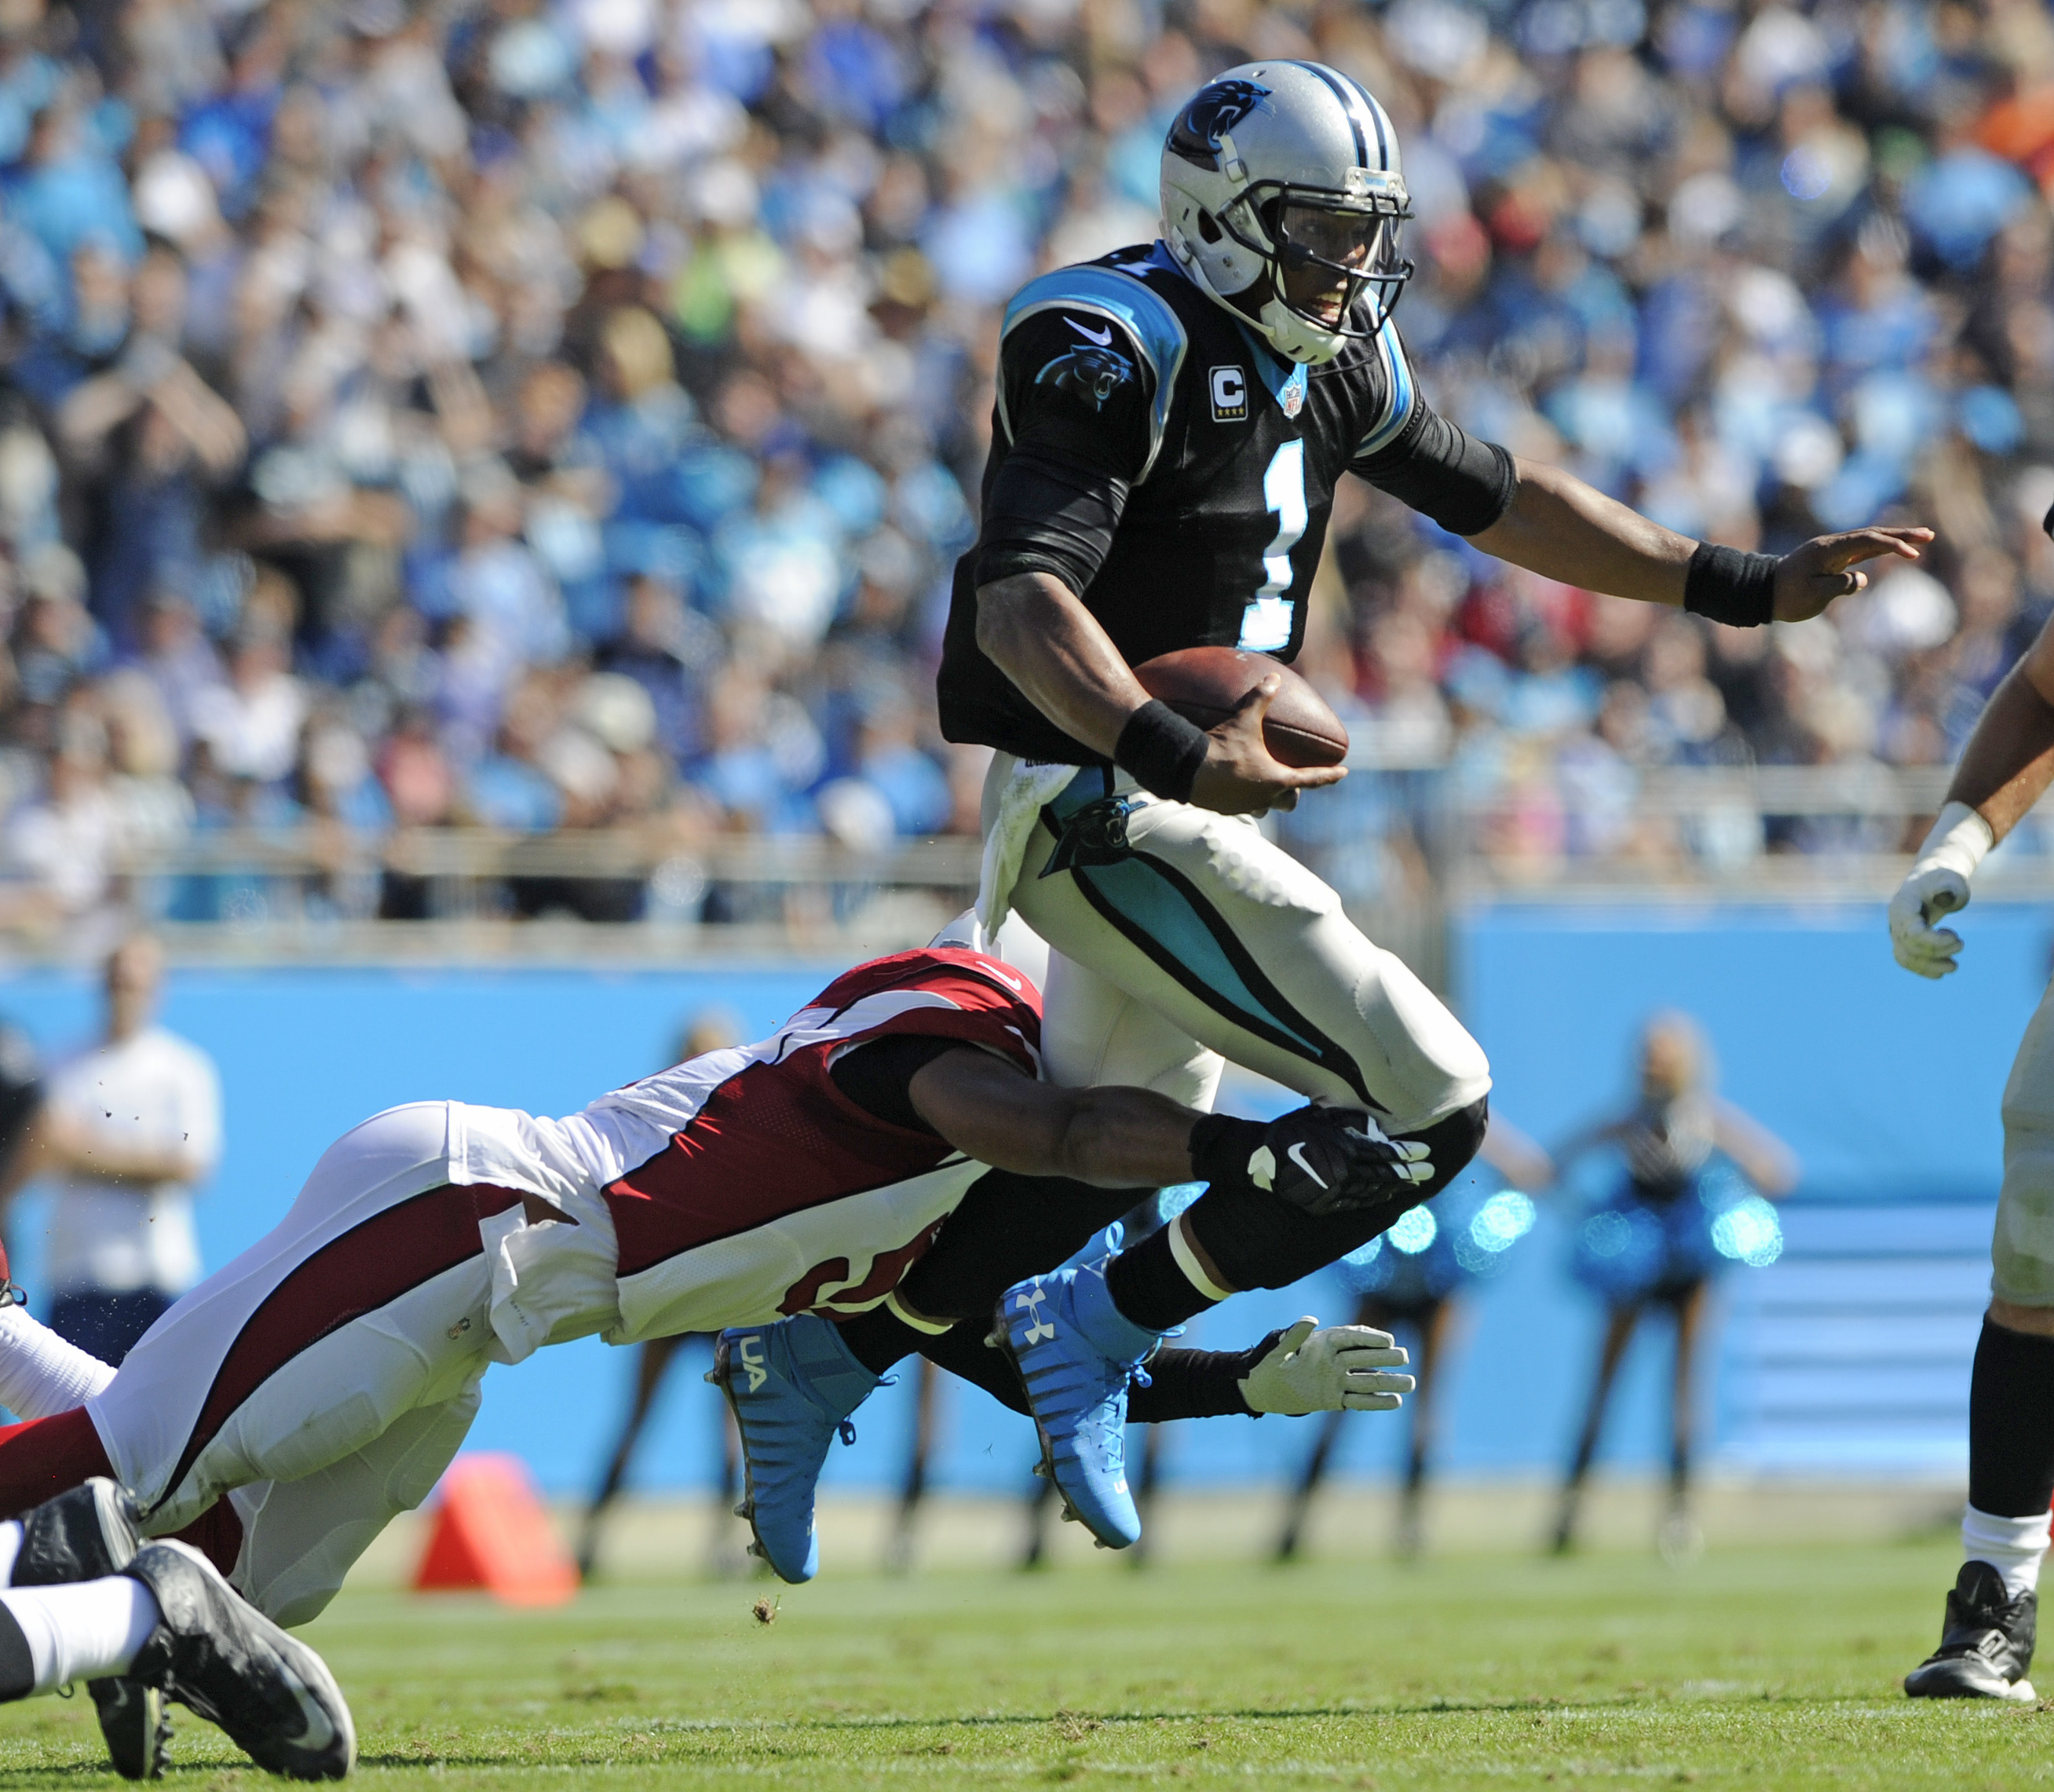 Carolina Panthers' Cam Newton (1) leaps to avoid the tackle of Arizona Cardinals' Kevin Minter (51) in the first quarter of an NFL football game in Charlotte, N.C., Sunday, Oct. 30, 2016. (AP Photo/Mike McCarn)